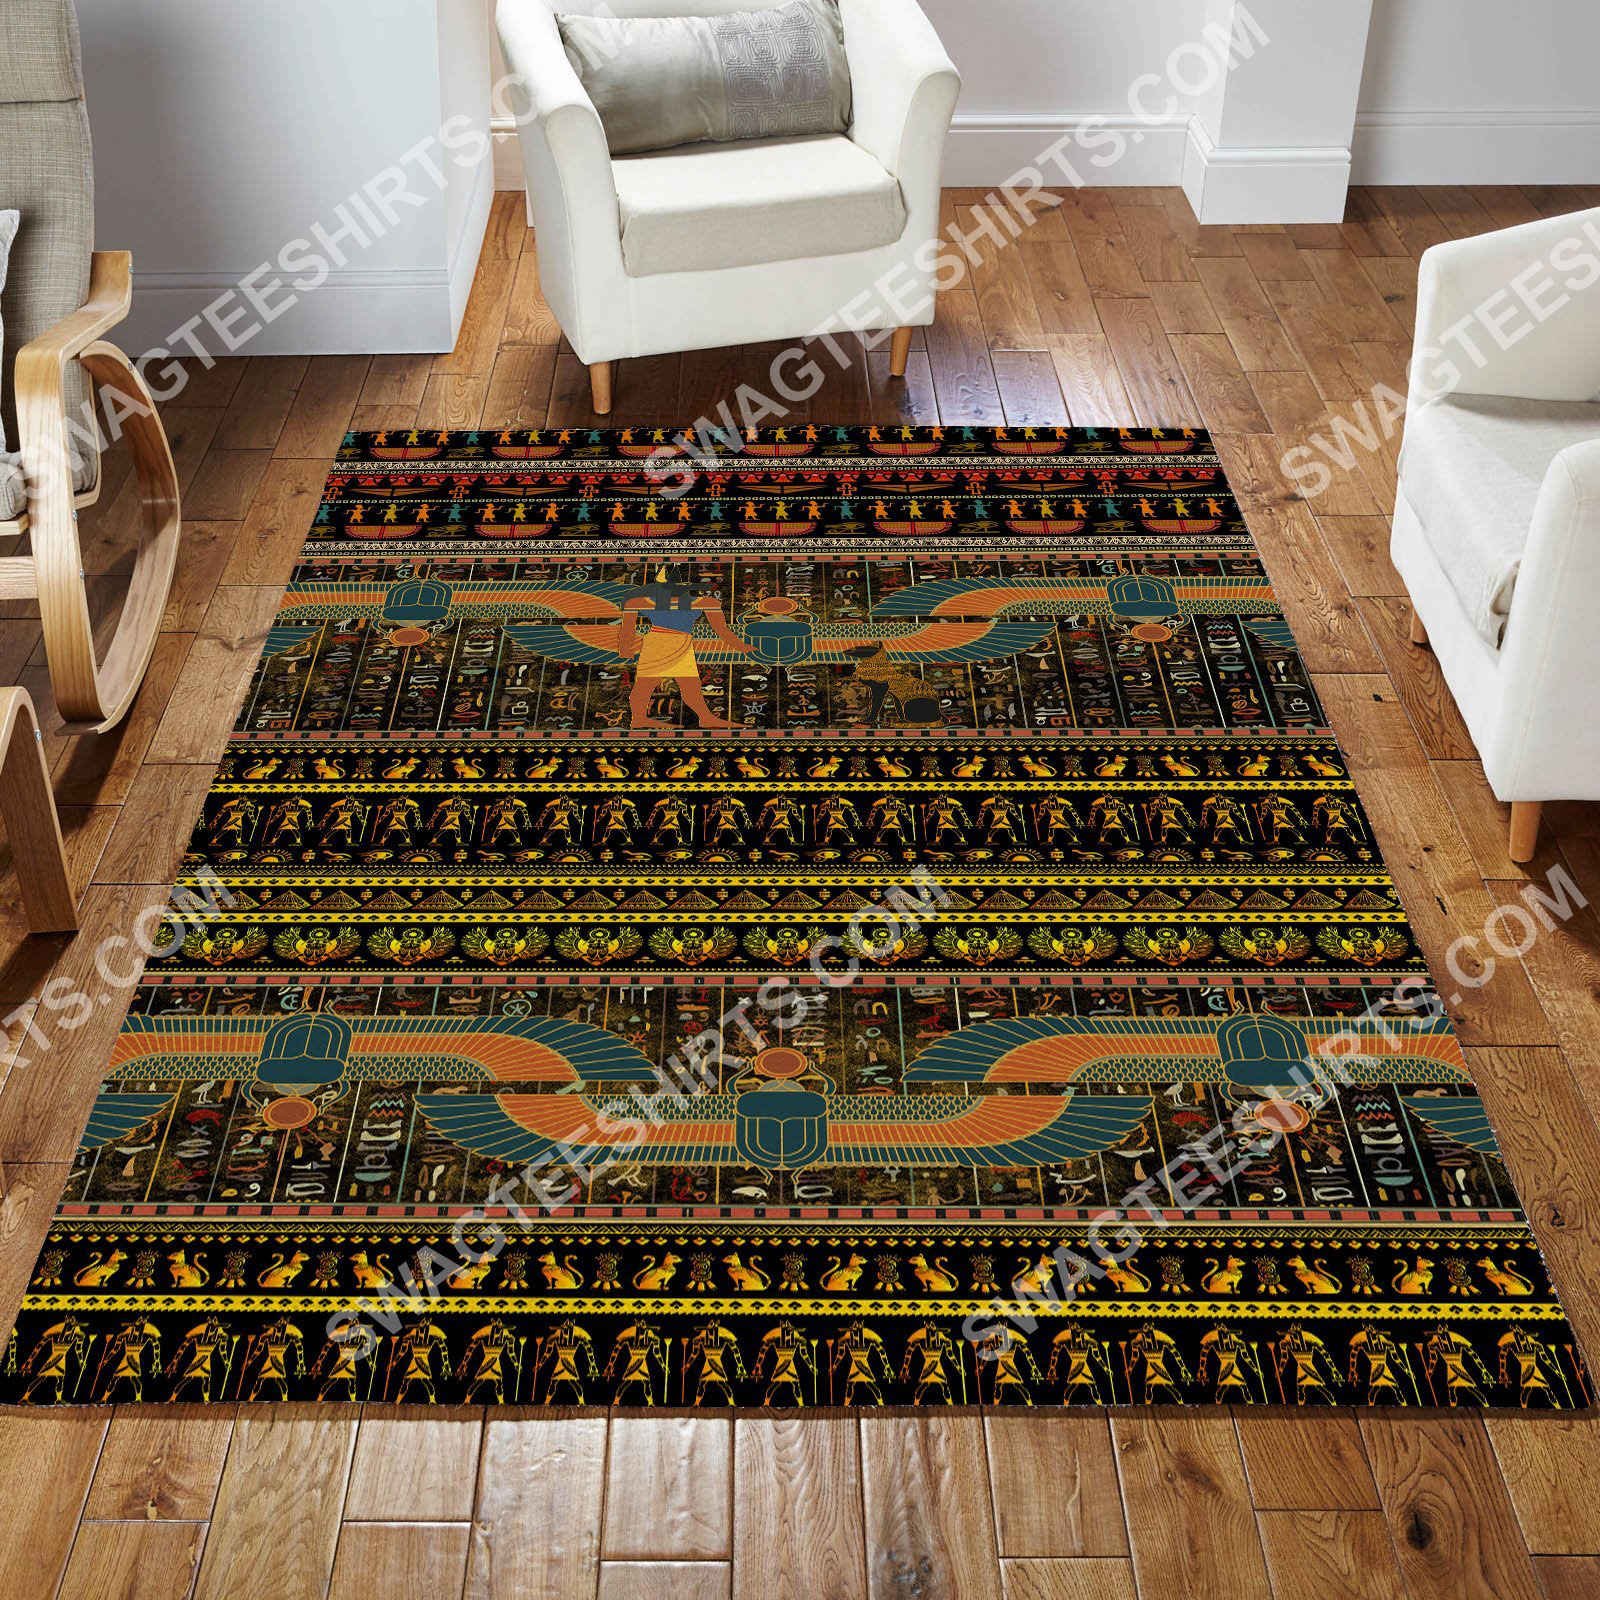 ancient egyptian culture all over printed rug 2(1)